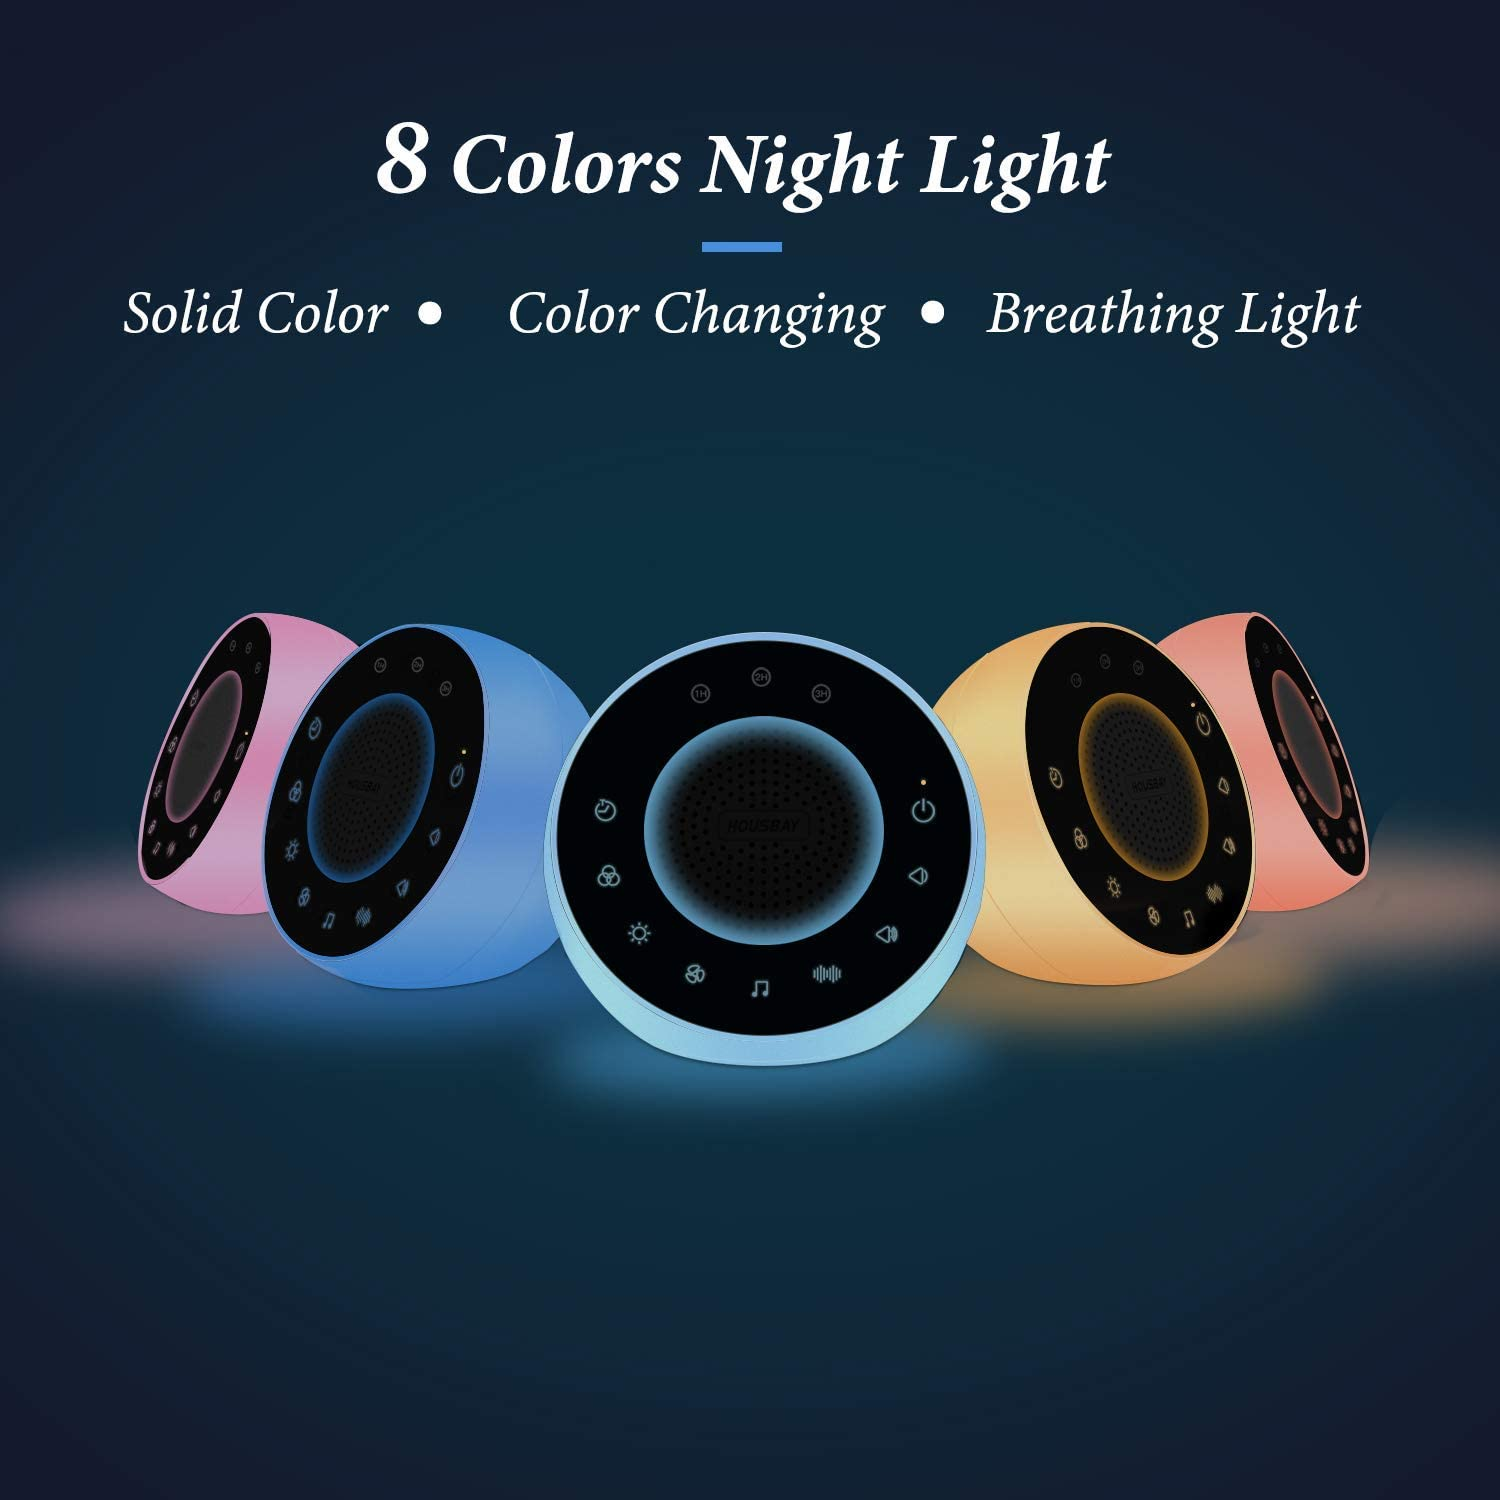 White Noise Sound Machine - Night Light for Soothing Sounds for Sleeping, Relaxation